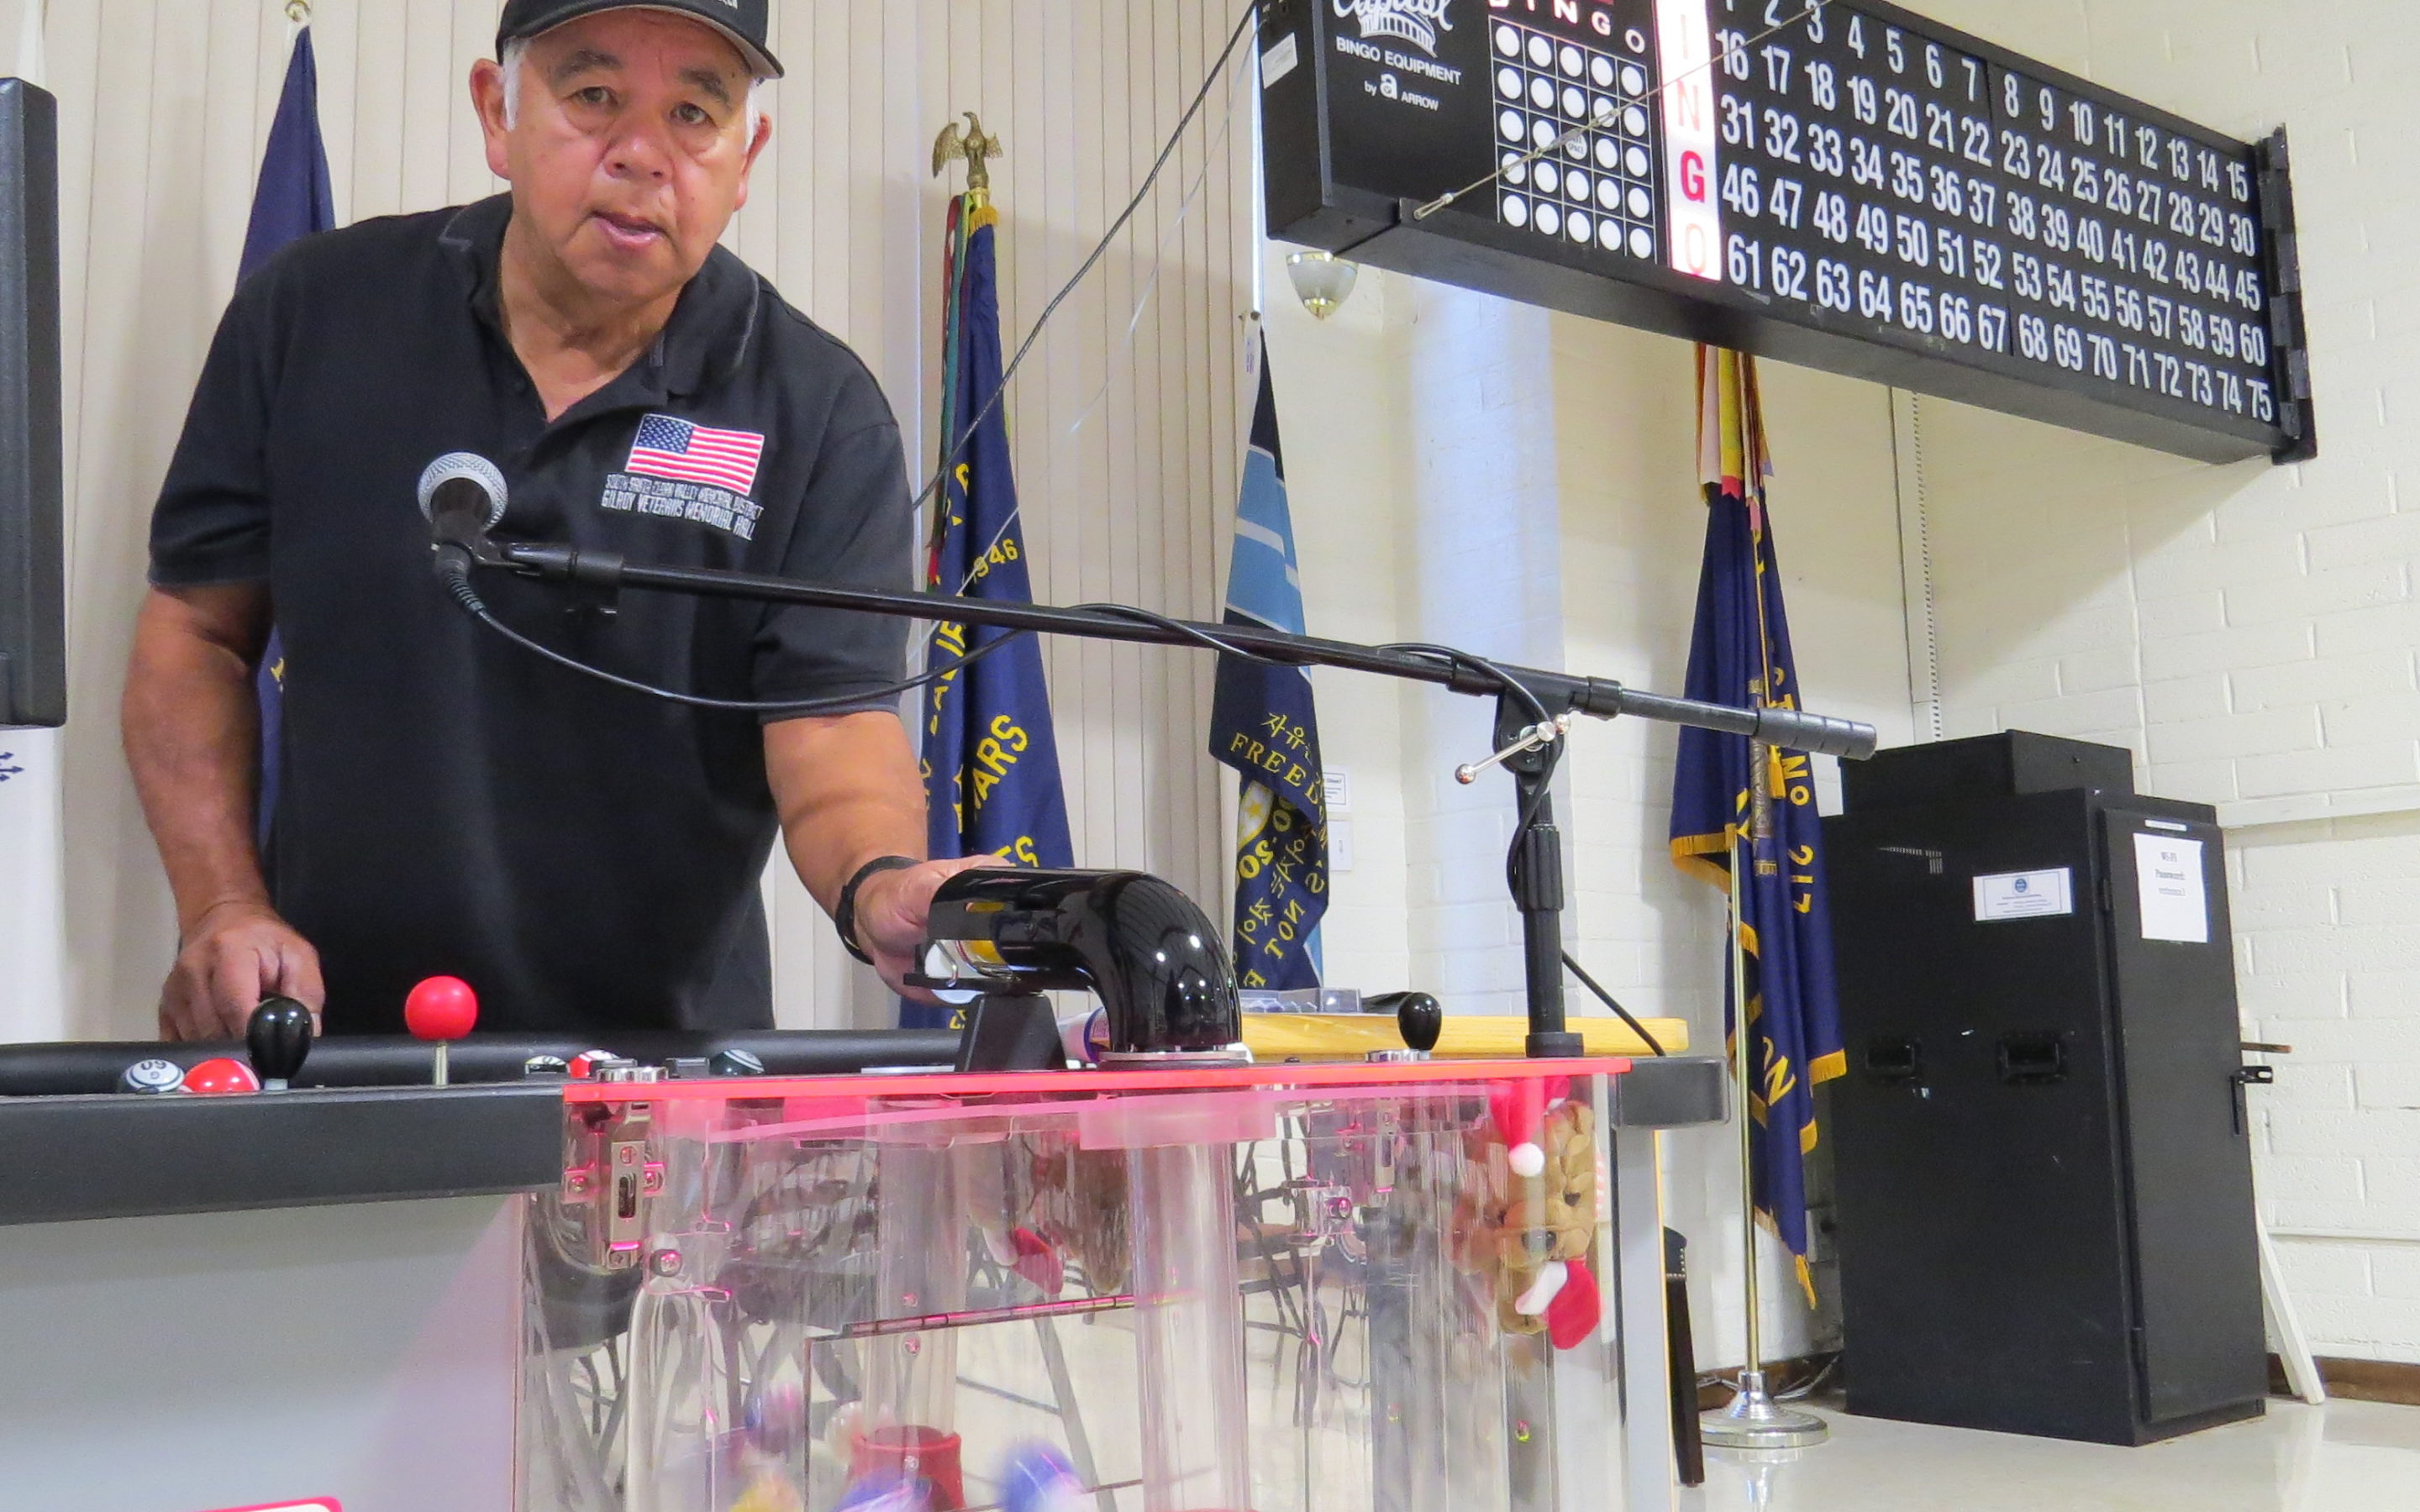 Main story: South Valley vets raising funds for major building remodel